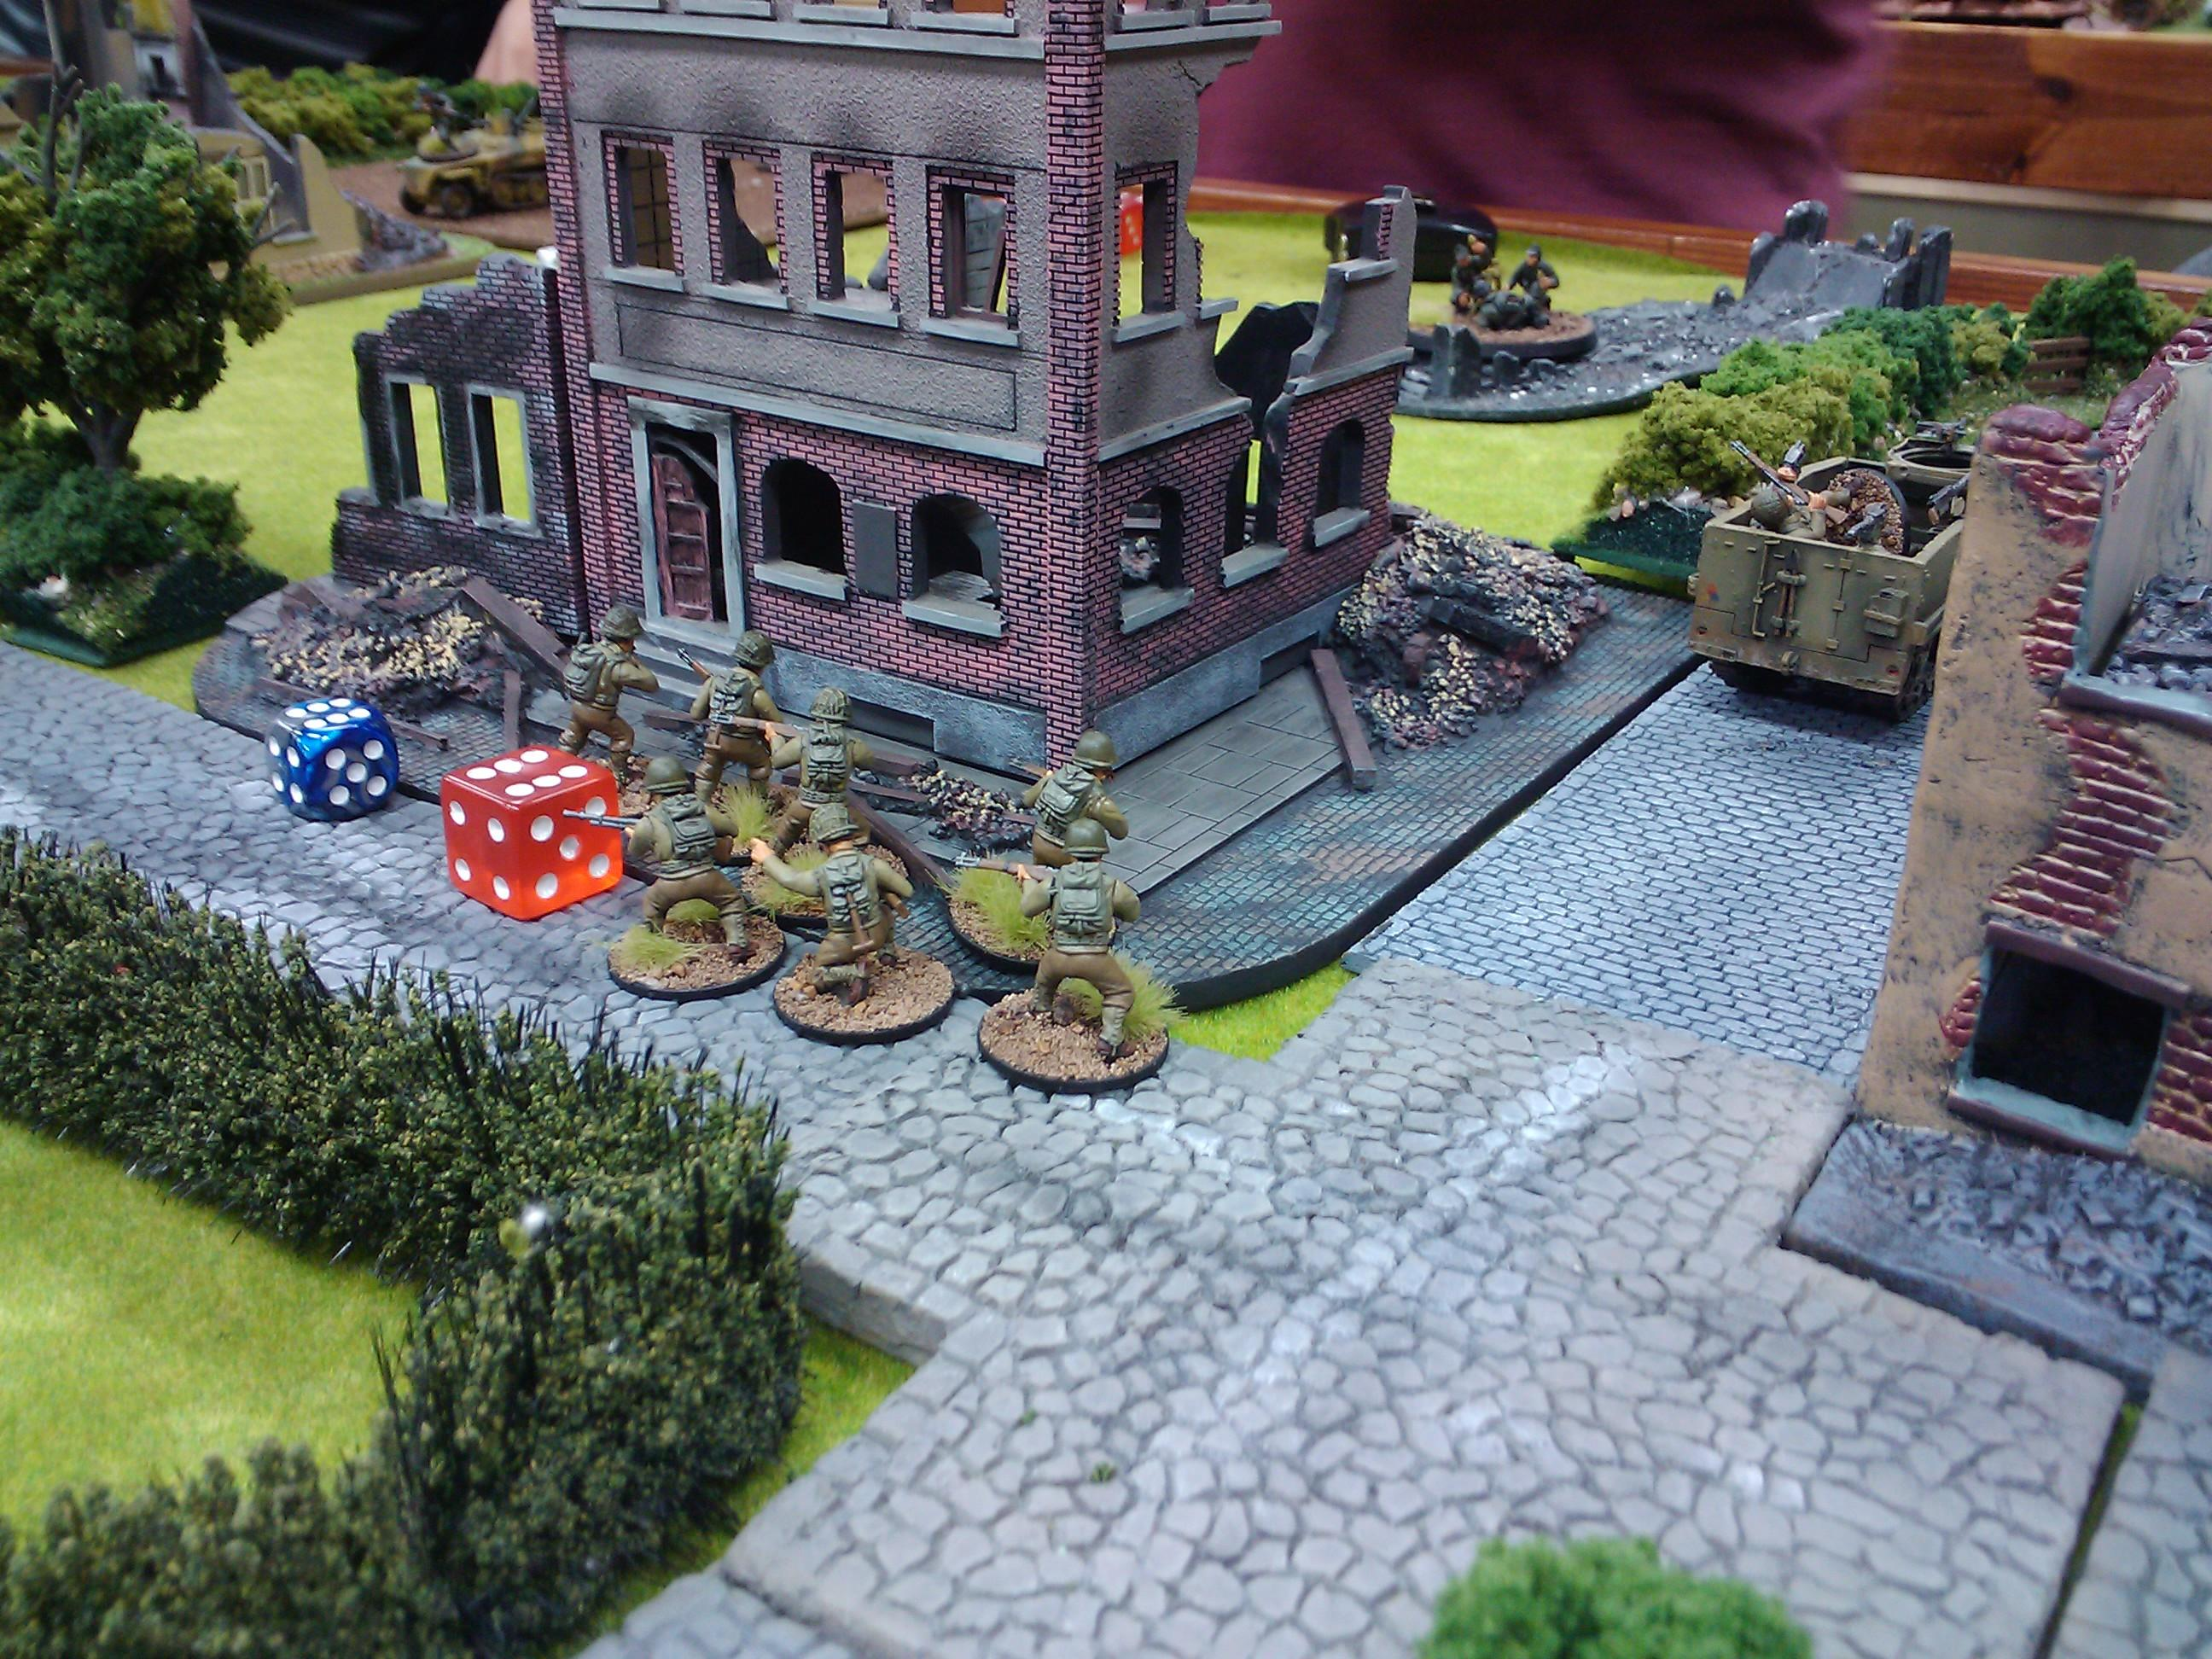 28mm, Army, Bolt Action, Demo, Game, Historical, Terrain, Us Army, Warlord Games, World War 2